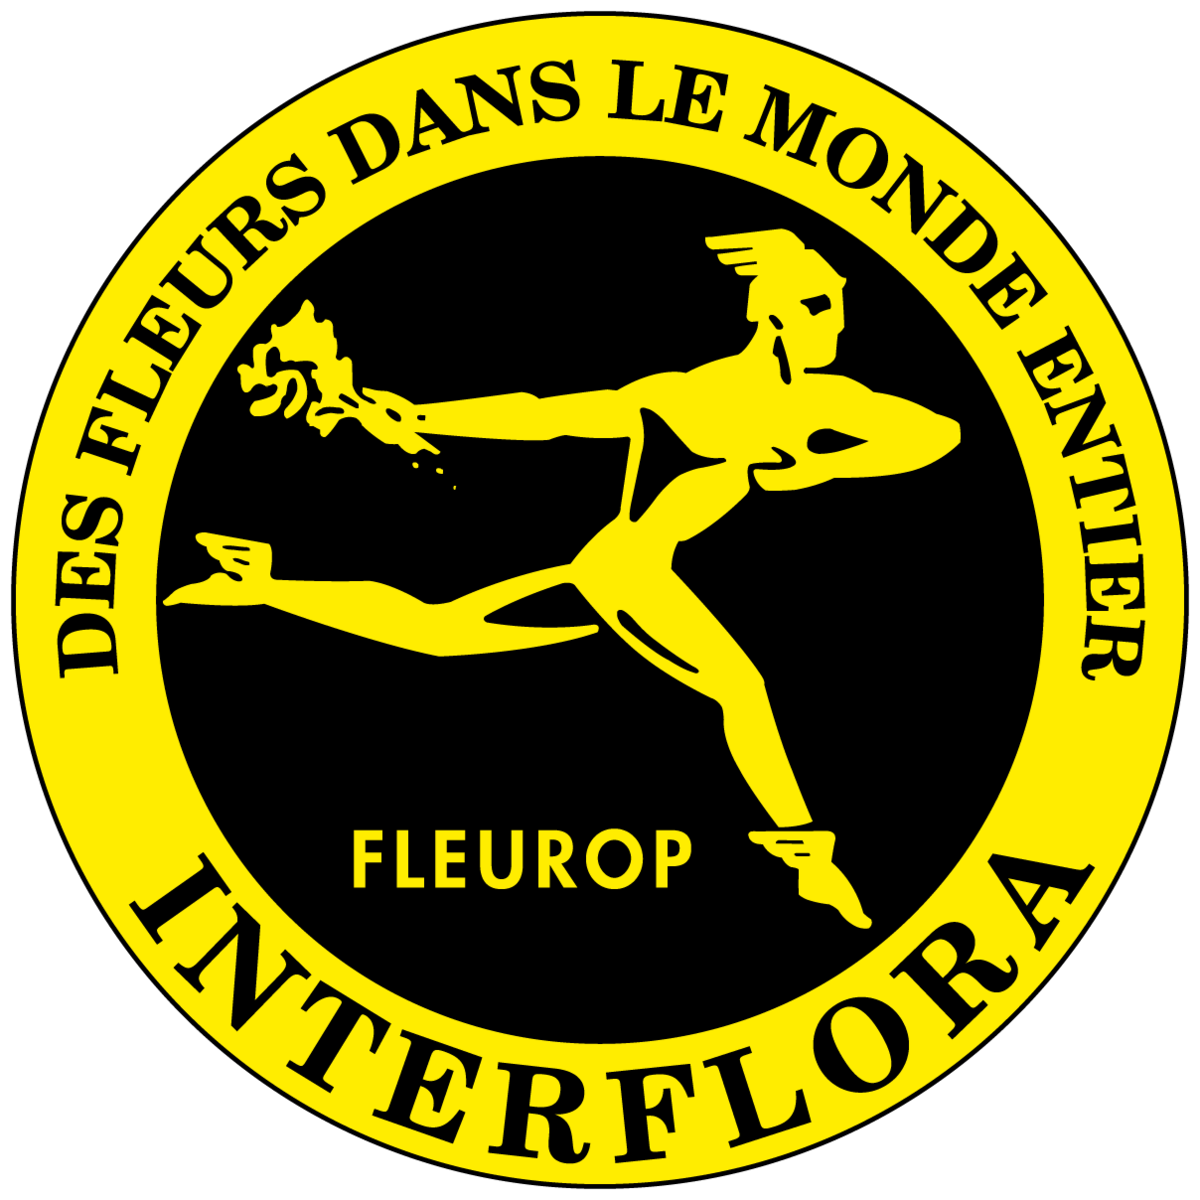 Interflora fleurop